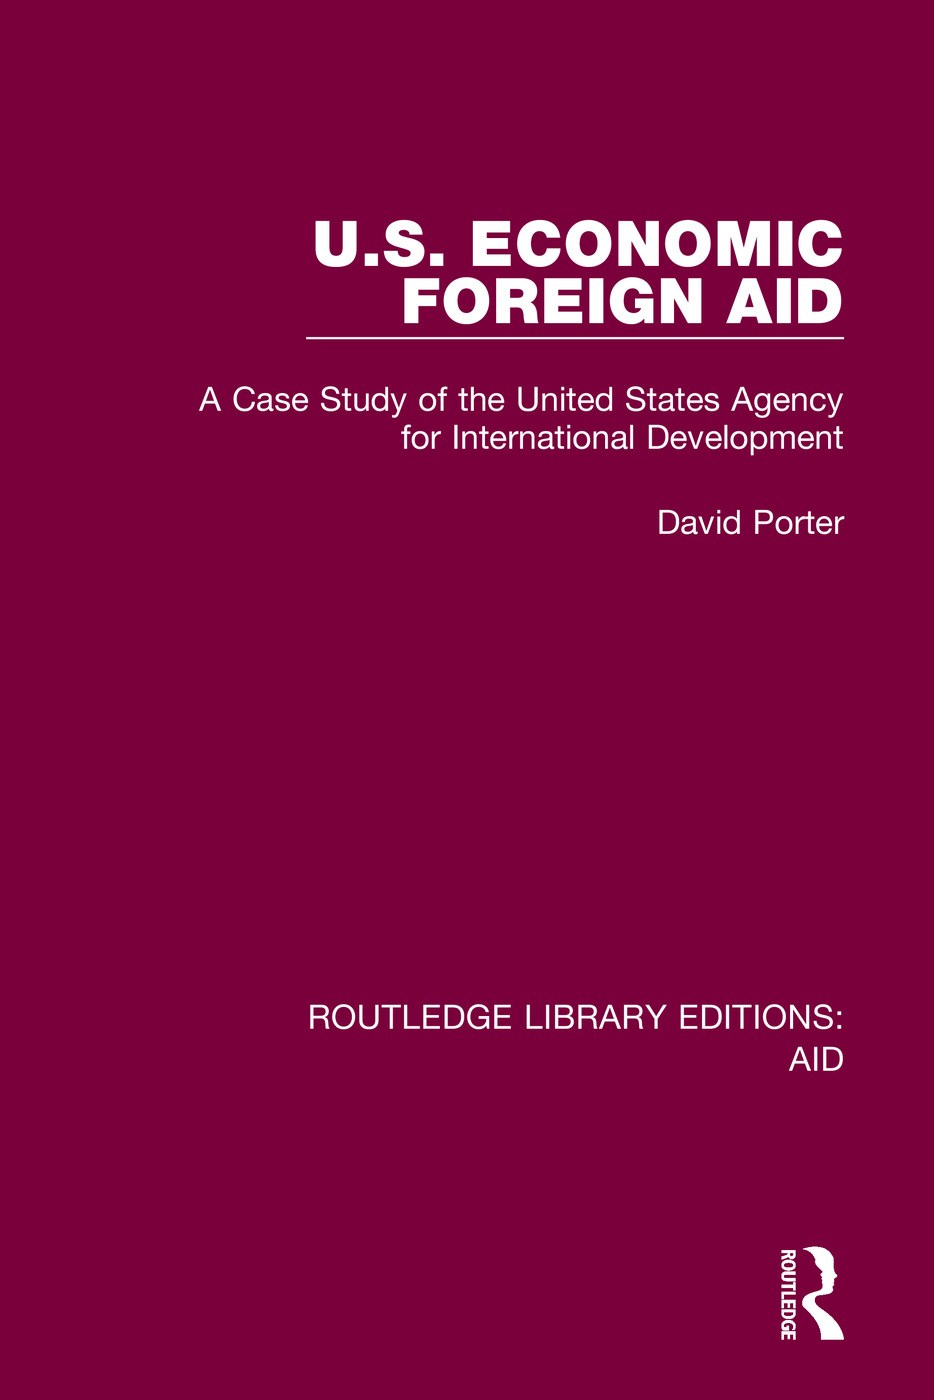 U.S. Economic Foreign Aid: A Case Study of the United States Agency for International Development book cover